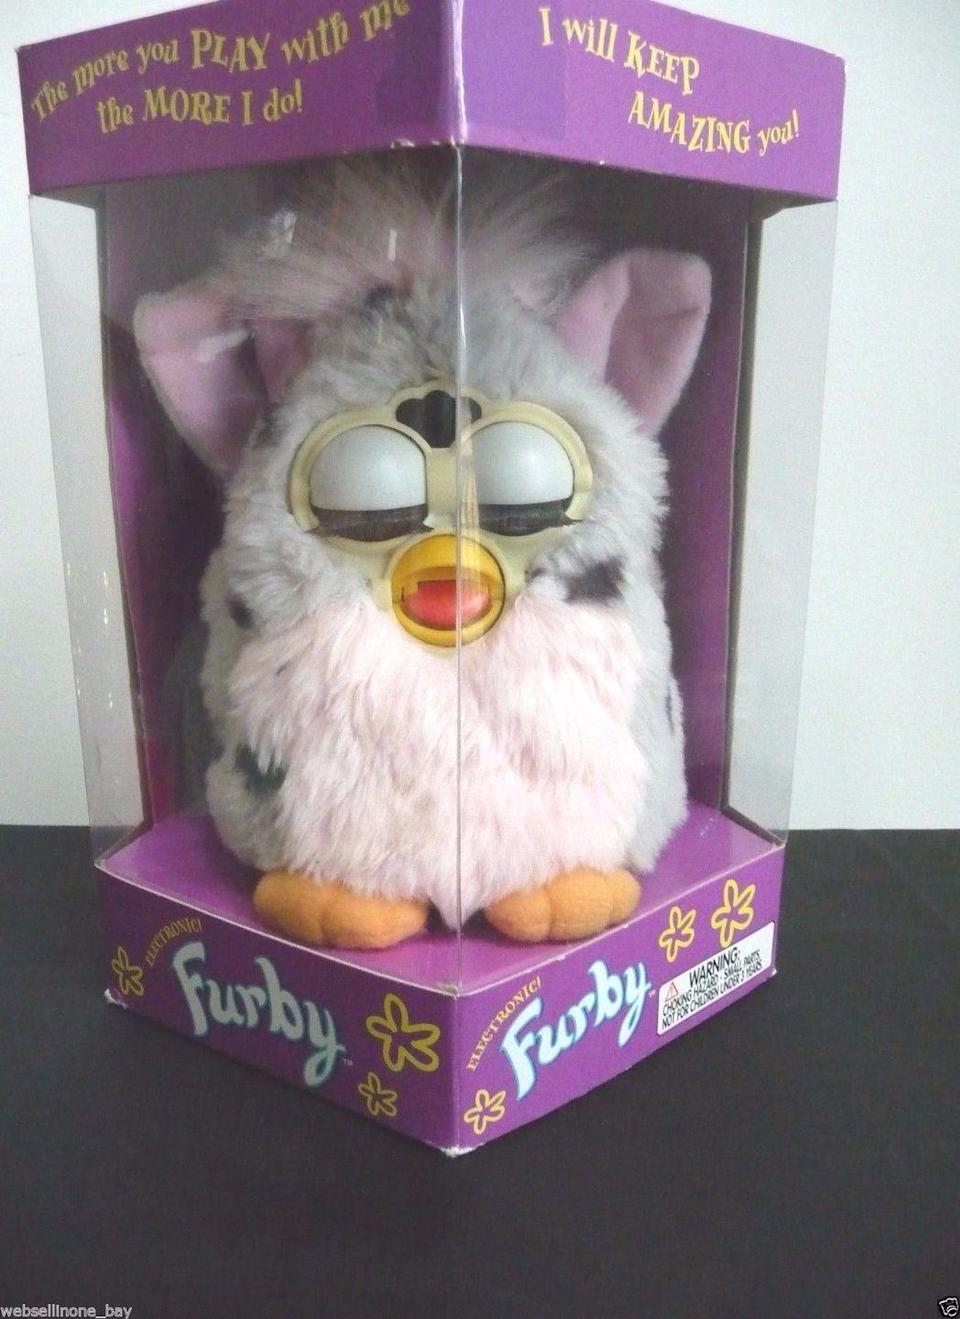 """<p>These furry, interactive toys came on the scene in 1998. If you're holding on to <a href=""""https://go.redirectingat.com?id=74968X1596630&url=http%3A%2F%2Fwww.ebay.com%2Fitm%2FTIGER-ELECTRONICS-1998-ORIGINAL-FURBY-NEVER-OPENED-CLOSED-EYES-700-80-%2F281965274098%3Fhash%3Ditem41a670a3f2%253Ag%253AMrkAAOSwh-1W2JoB&sref=https%3A%2F%2Fwww.countryliving.com%2Fshopping%2Fantiques%2Fg3141%2Fmost-valuable-toys-from-childhood%2F"""" rel=""""nofollow noopener"""" target=""""_blank"""" data-ylk=""""slk:an early version in an unopened box"""" class=""""link rapid-noclick-resp"""">an early version in an unopened box</a>, you could expect it to fetch about $900. </p>"""